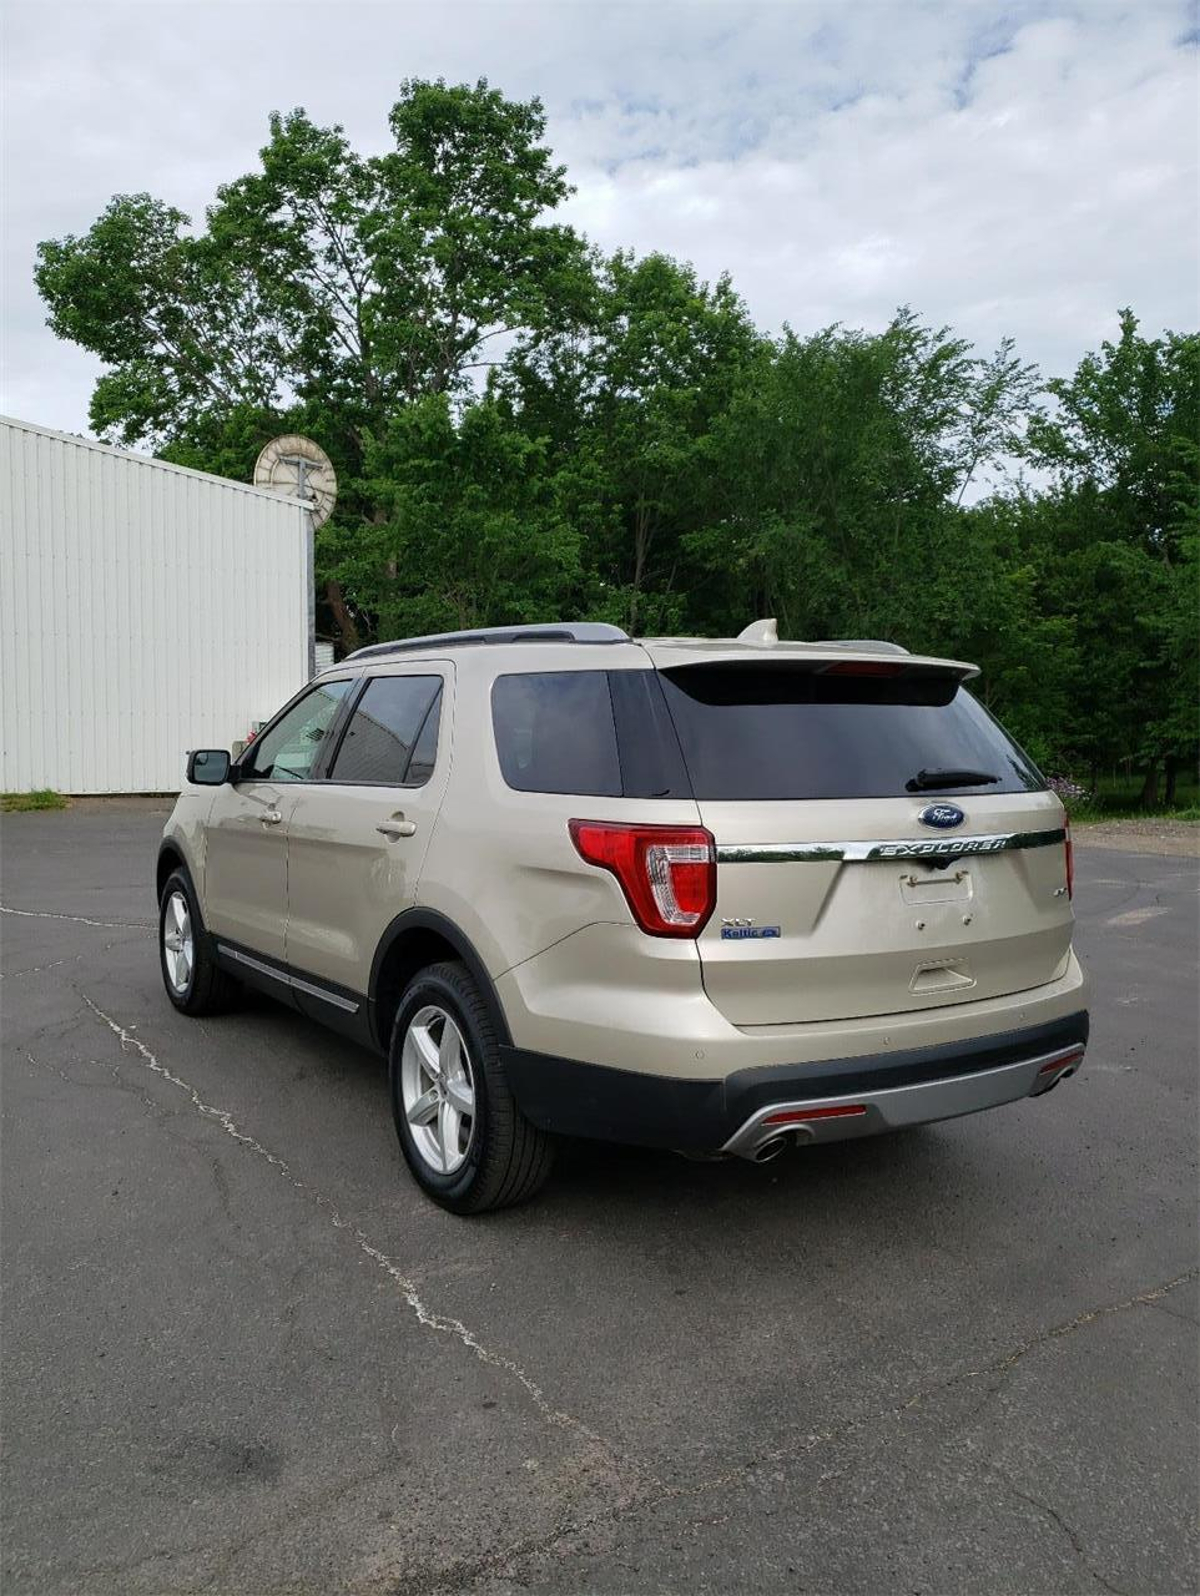 Ford Explorer Vehicle Details Image